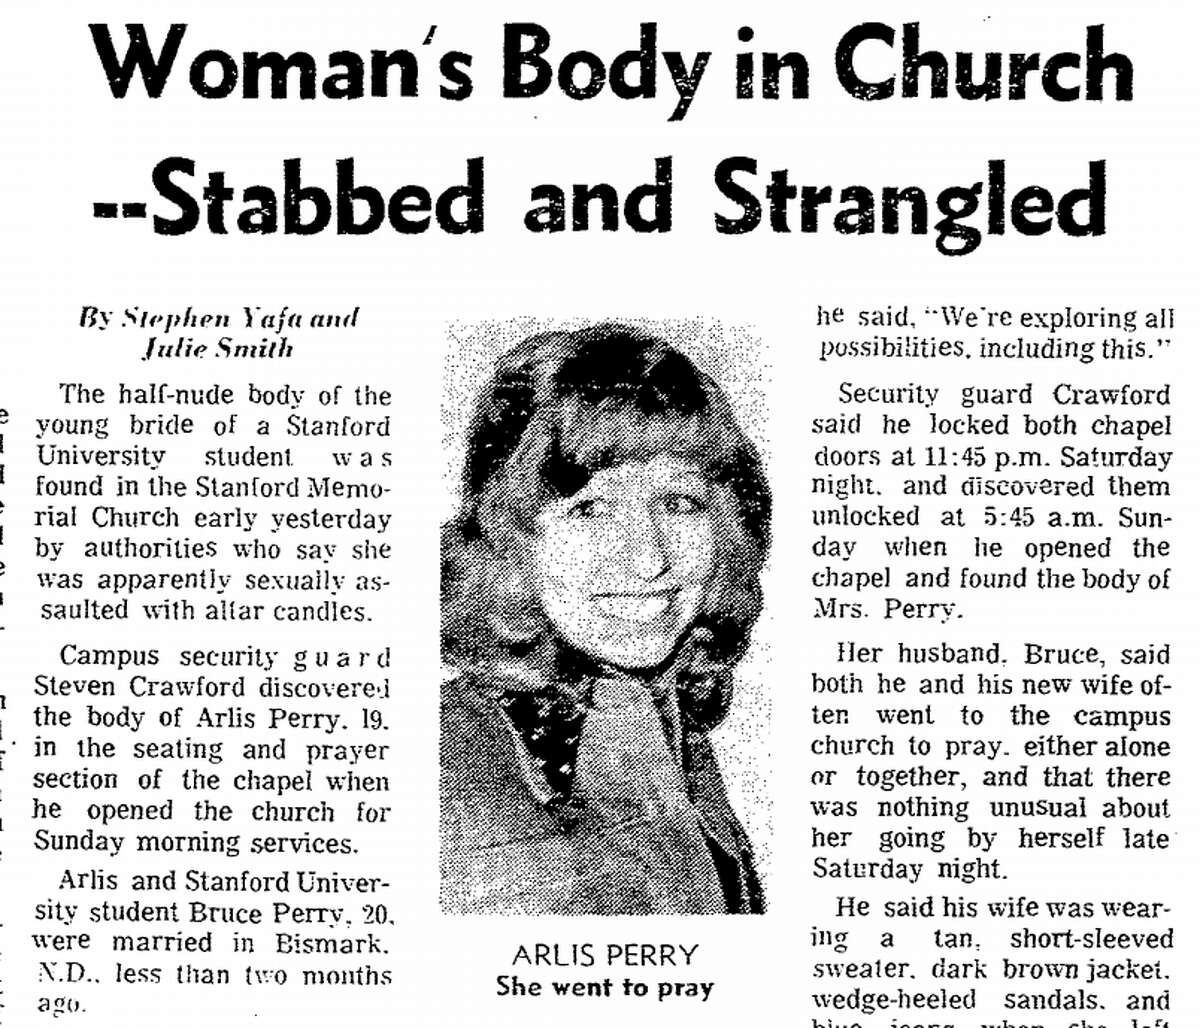 A San Francisco Chronicle article about the 1974 murder of Arlis Perry on the Stanford campus.